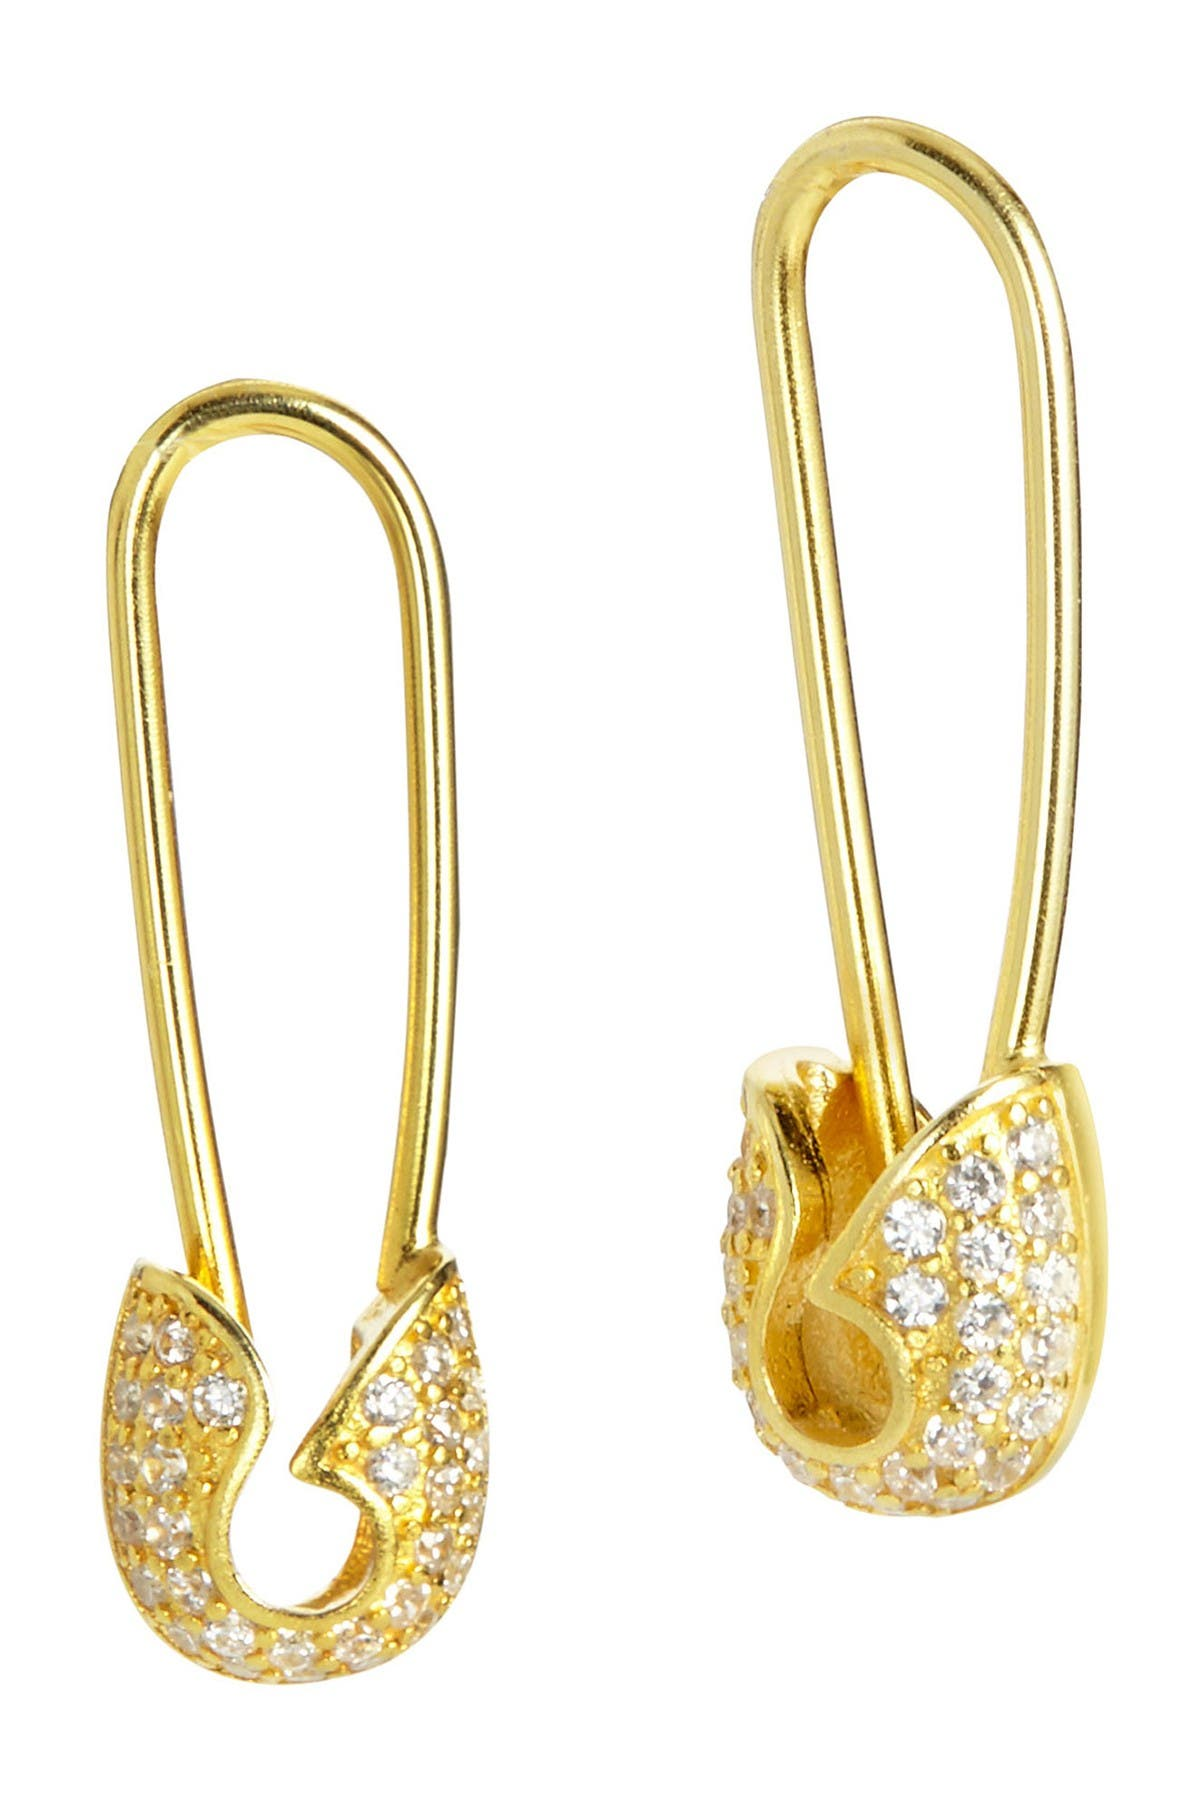 Image of Savvy Cie 18K Yellow Gold Vermeil Sterling Silver Cubic Zirconia Drop Earrings